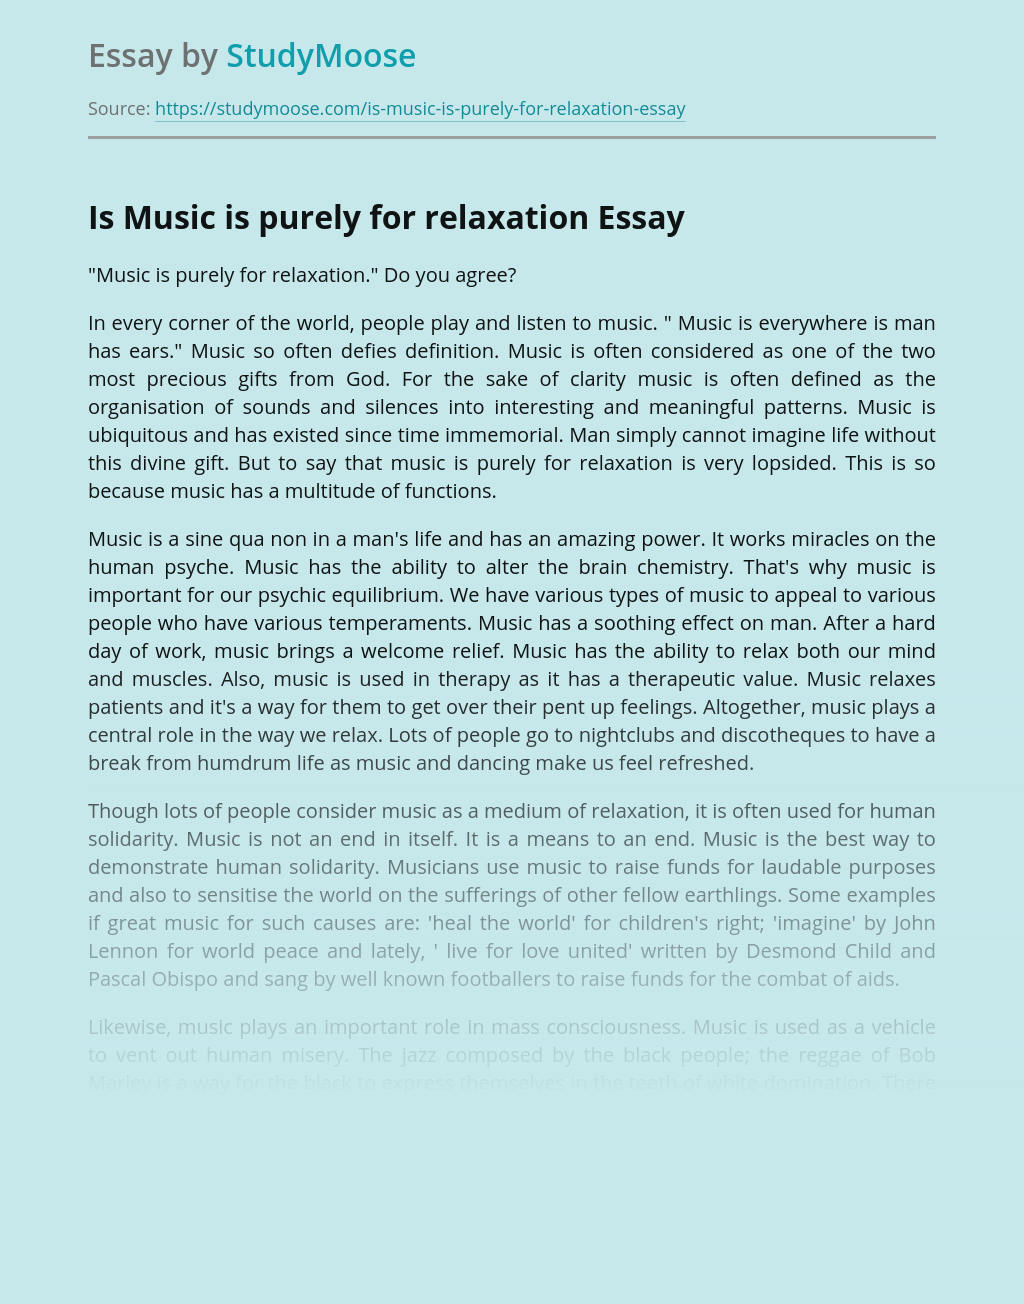 Is Music is purely for relaxation